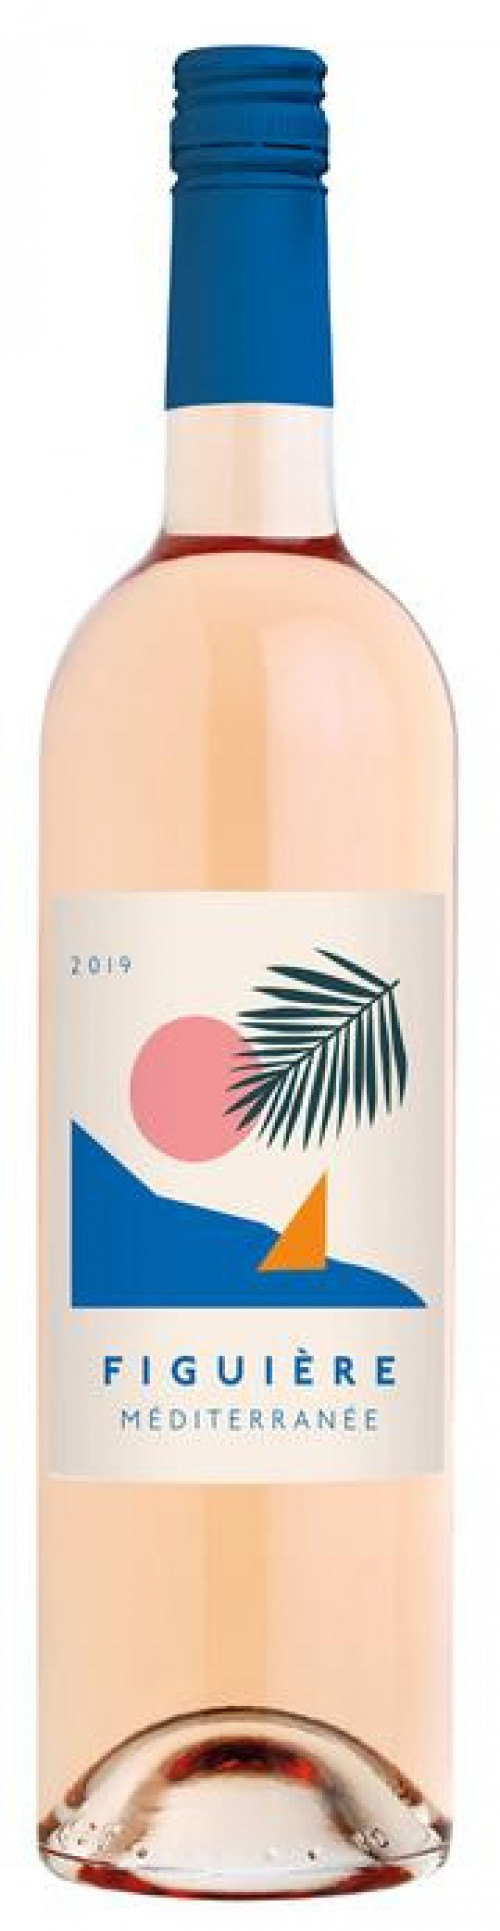 Figuiere Mediterranee Rose 750ml